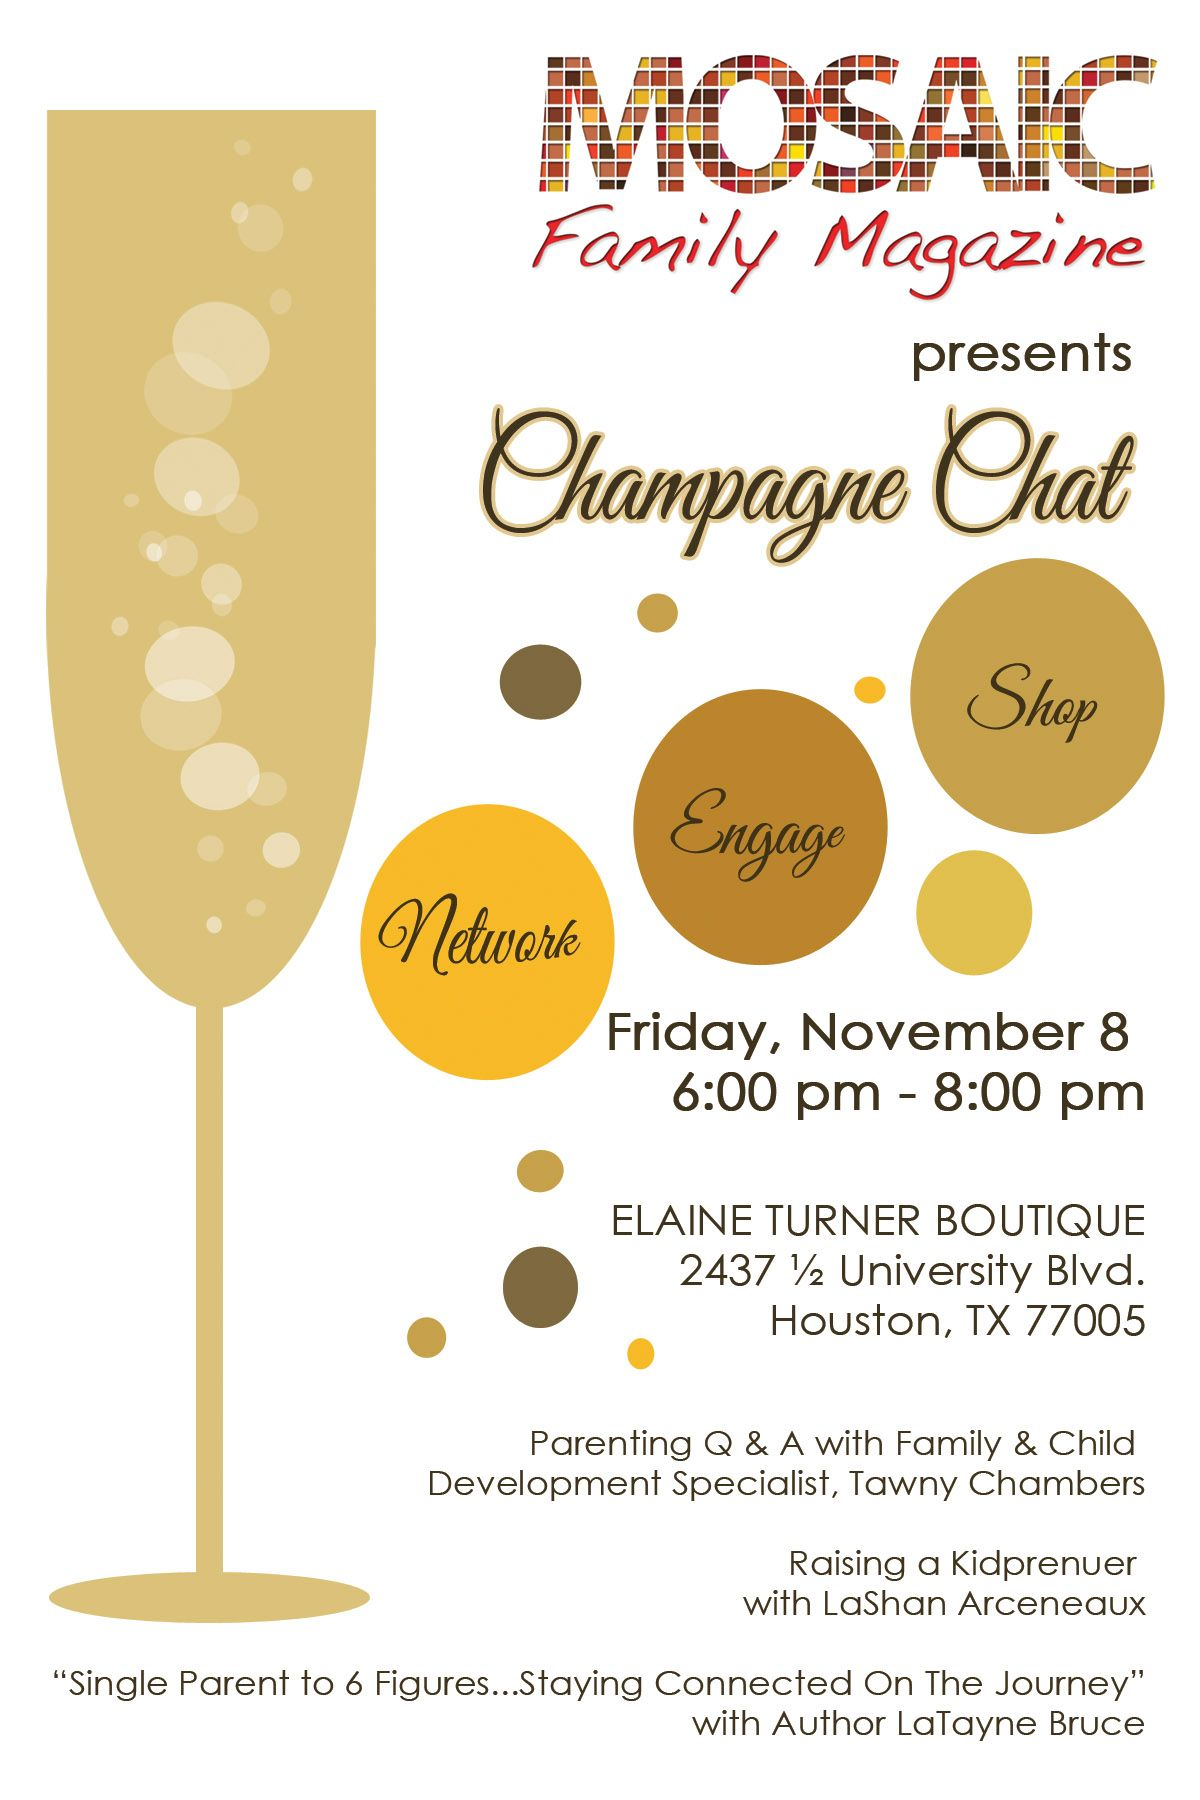 Champagne Themed Invitation For Networking Event